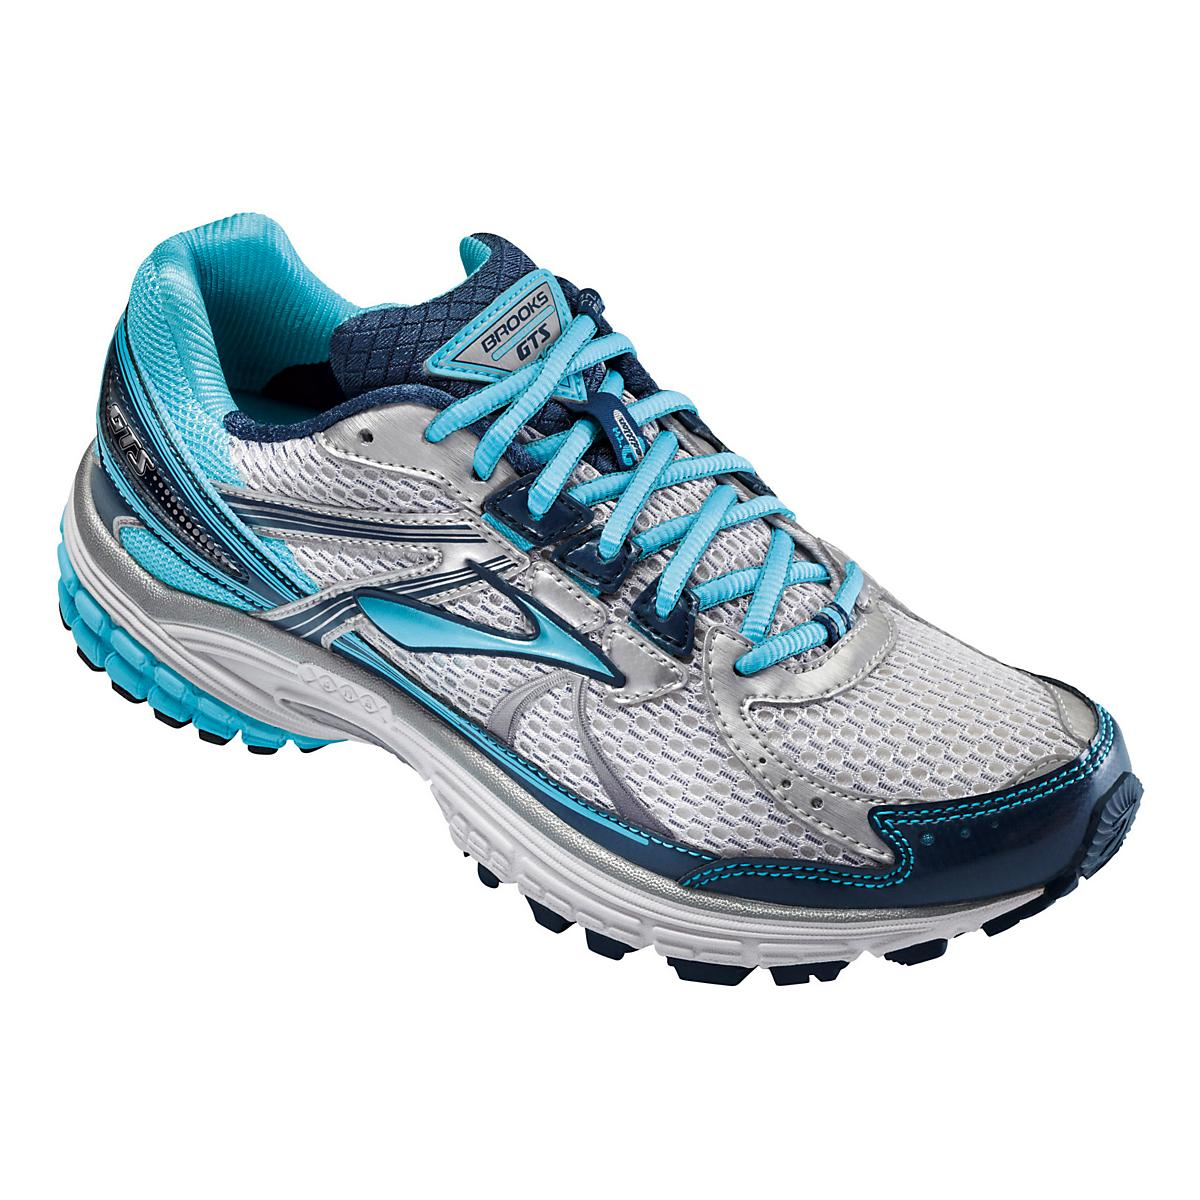 a02fba60c78 Womens Brooks Adrenaline GTS 13 Running Shoe at Road Runner Sports